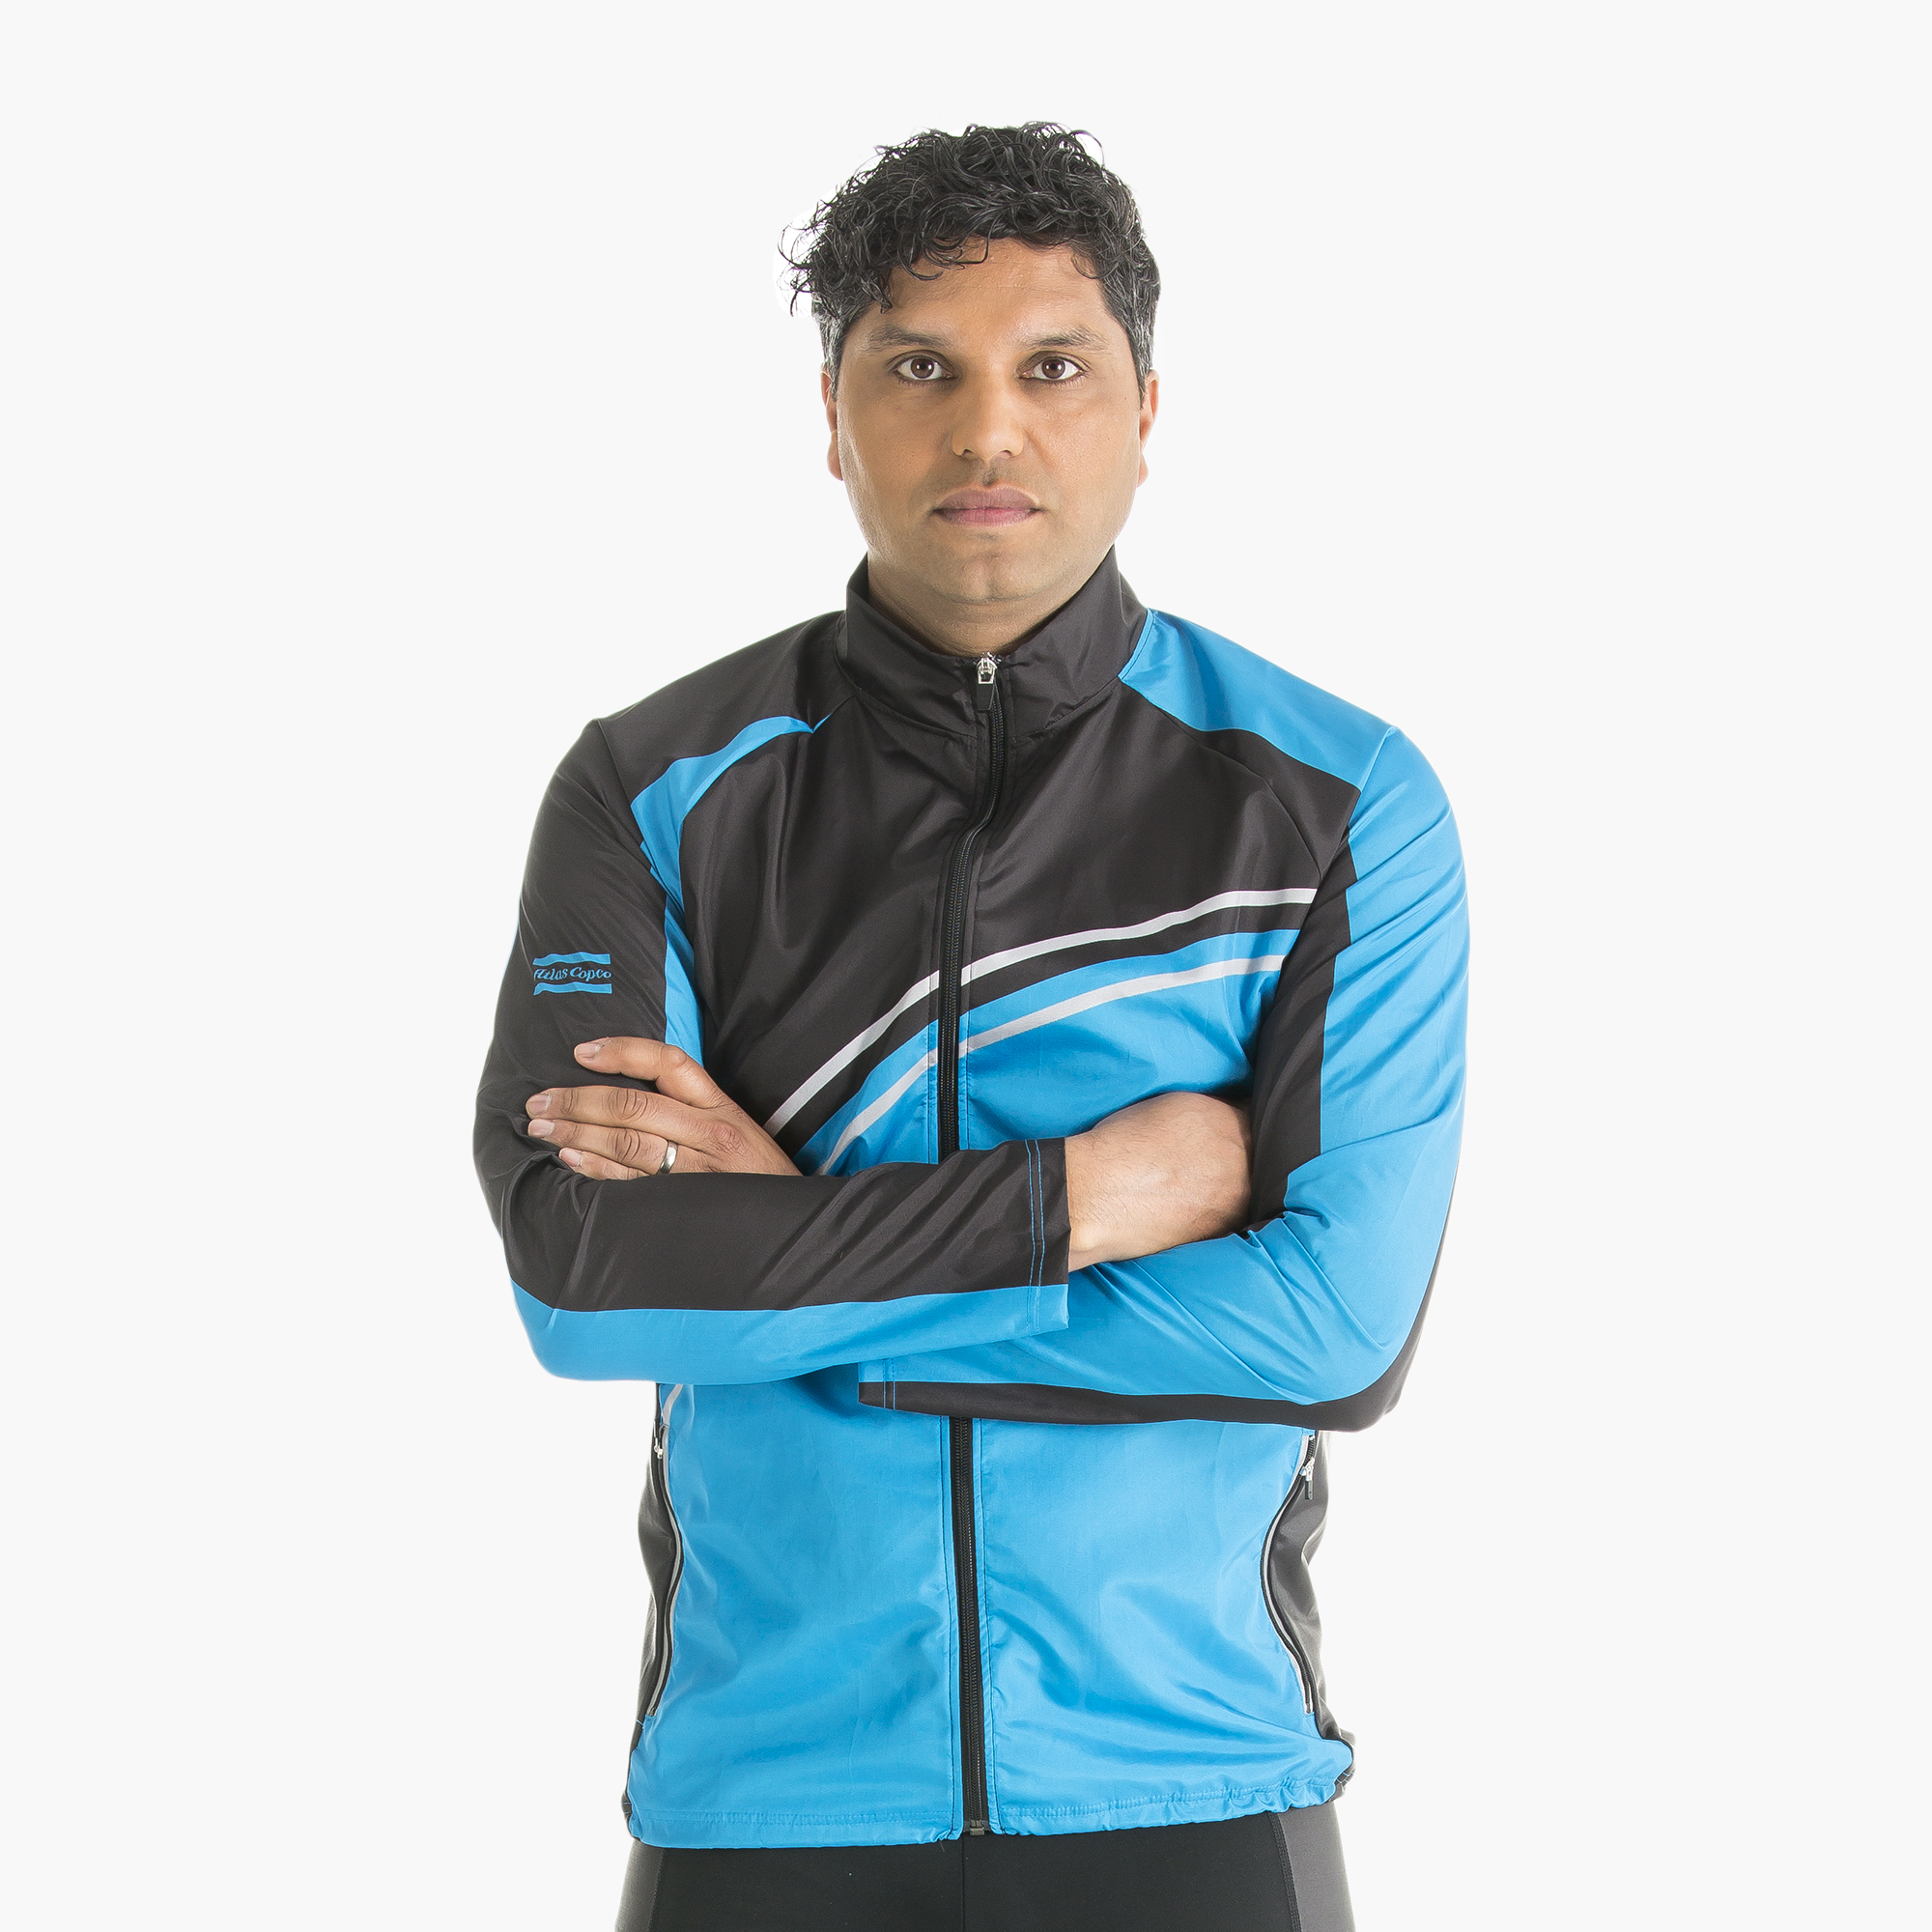 A wind resistant jacket for people who stick to their training schedule whatever the weather. Performance Jacket has raglan sleeves, a long front zip, a reflective strip on the back, zippered pockets for things you need with you and elastic side fabric insertions for optimal freedom of movement.